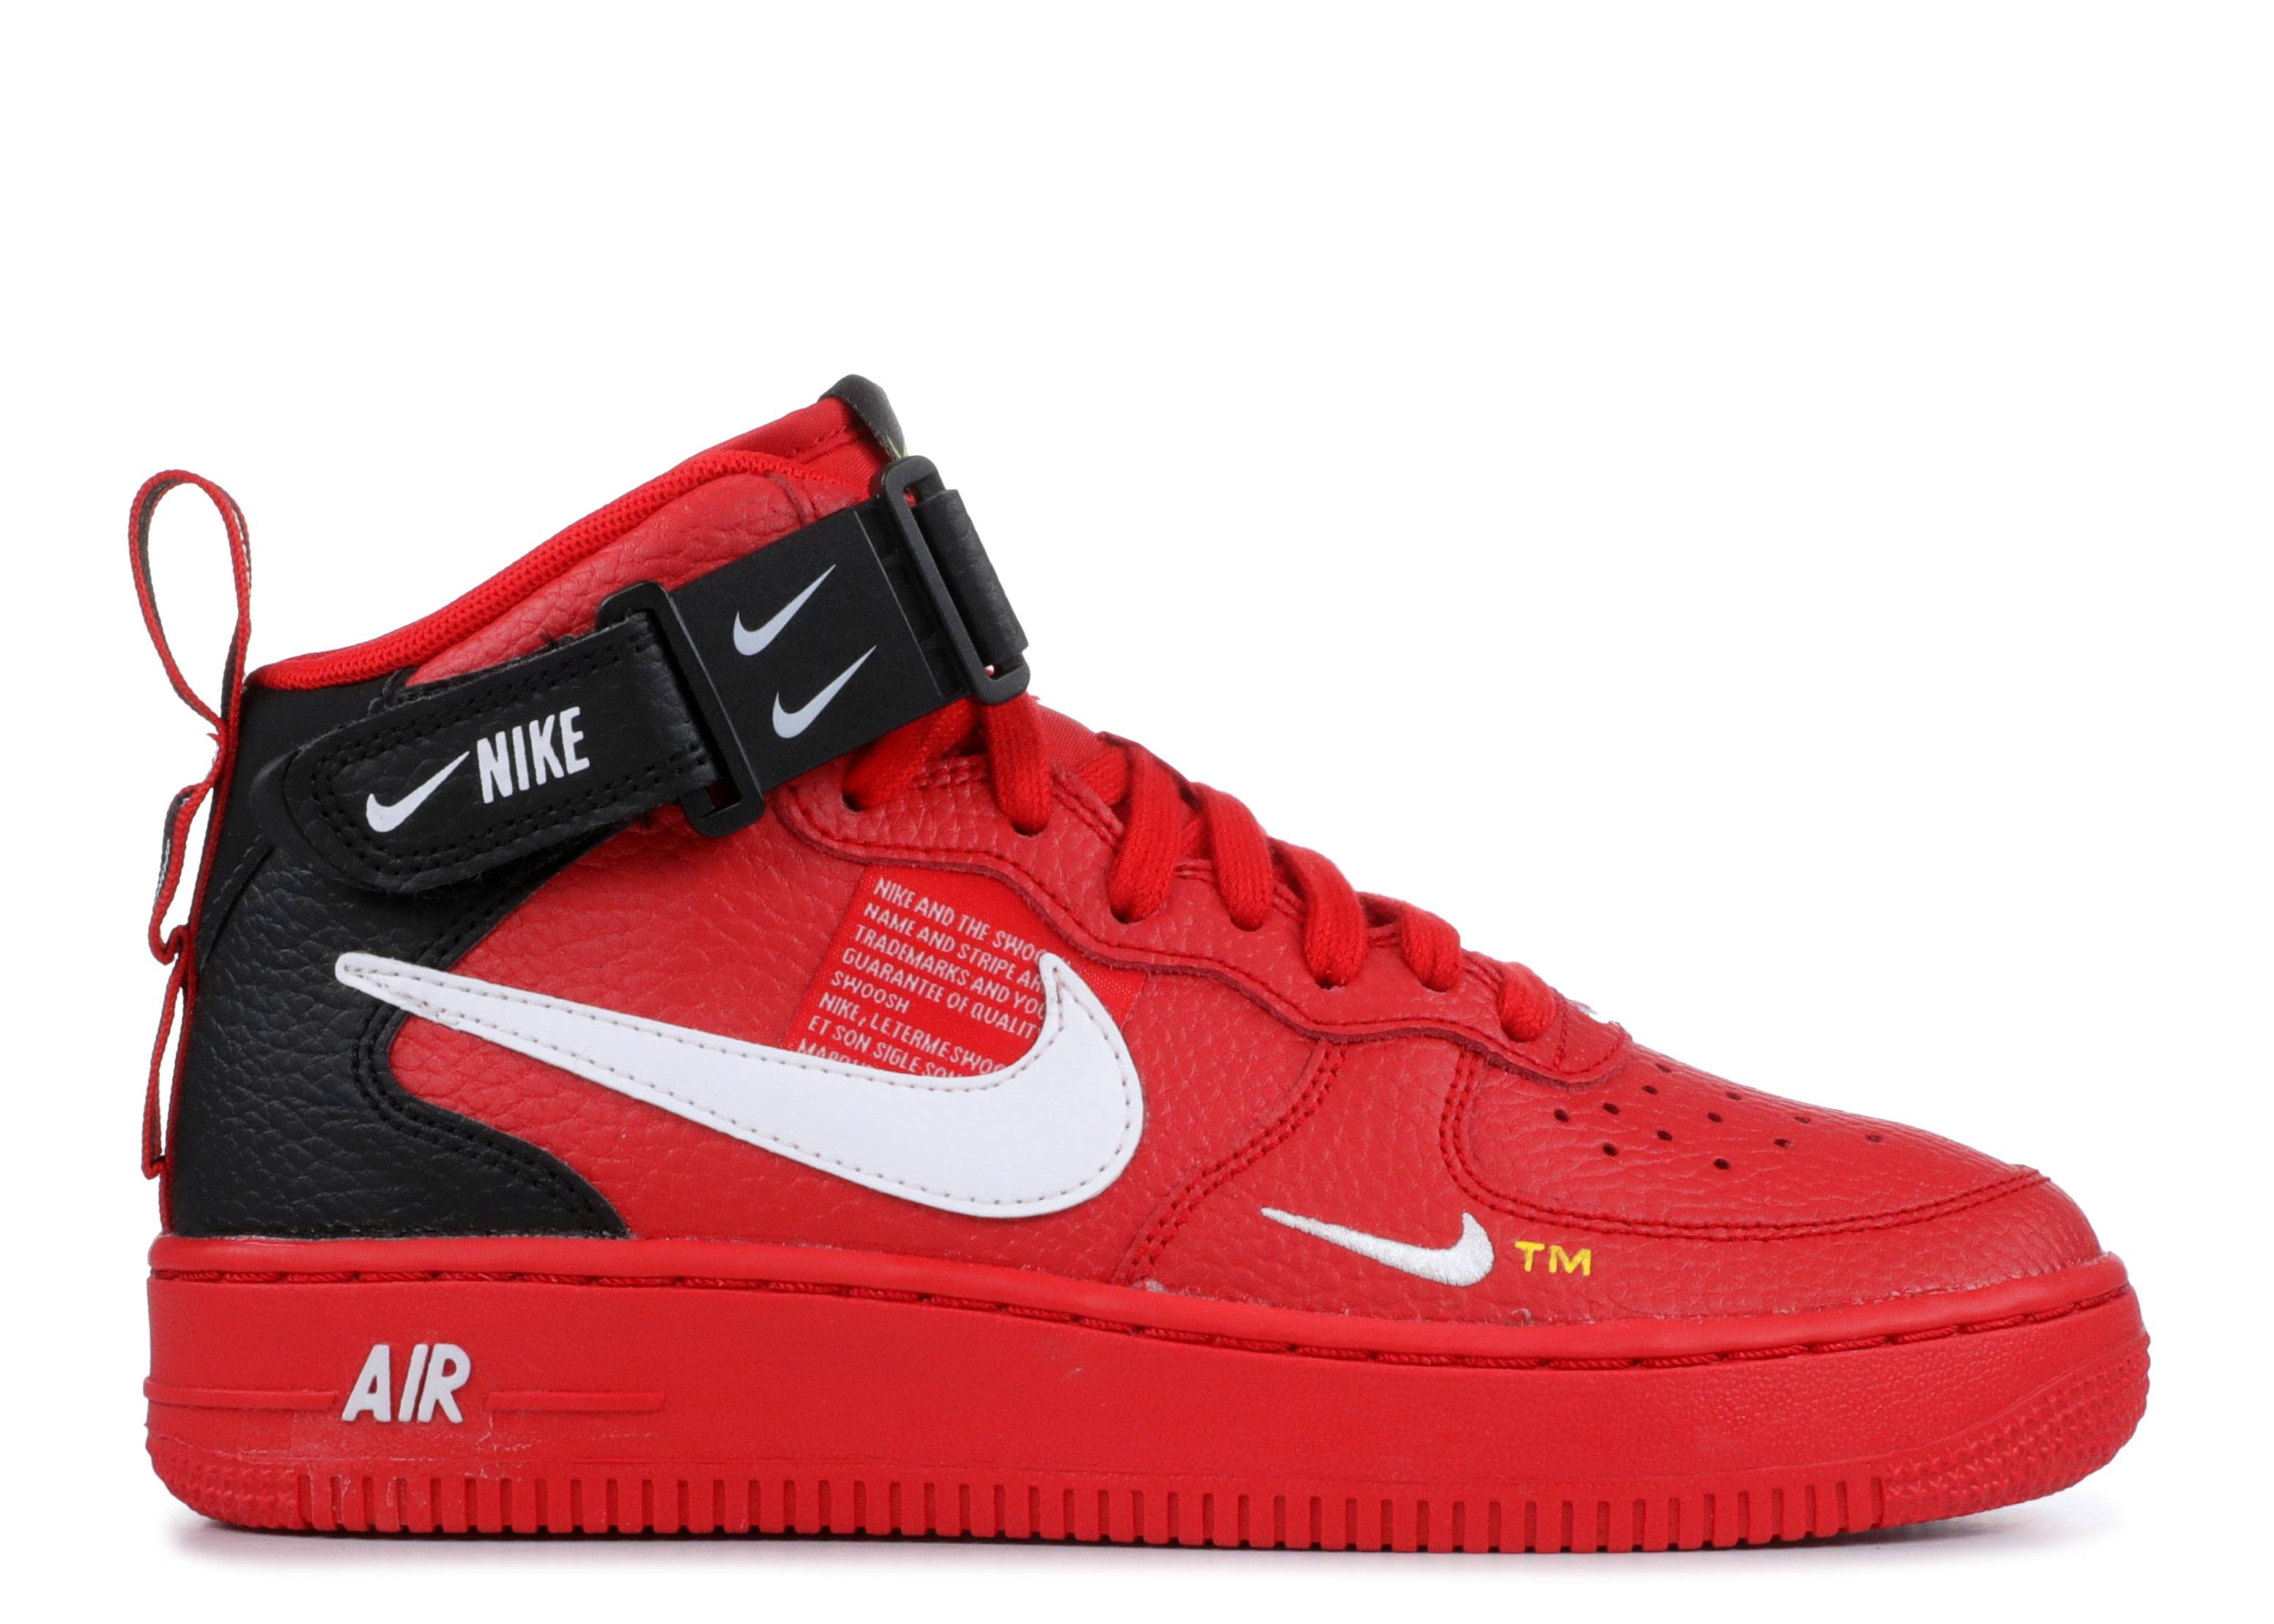 ce2dbc66d Air Force 1 Mid Lv8 (gs) - Nike - av3803 600 - university red/white ...